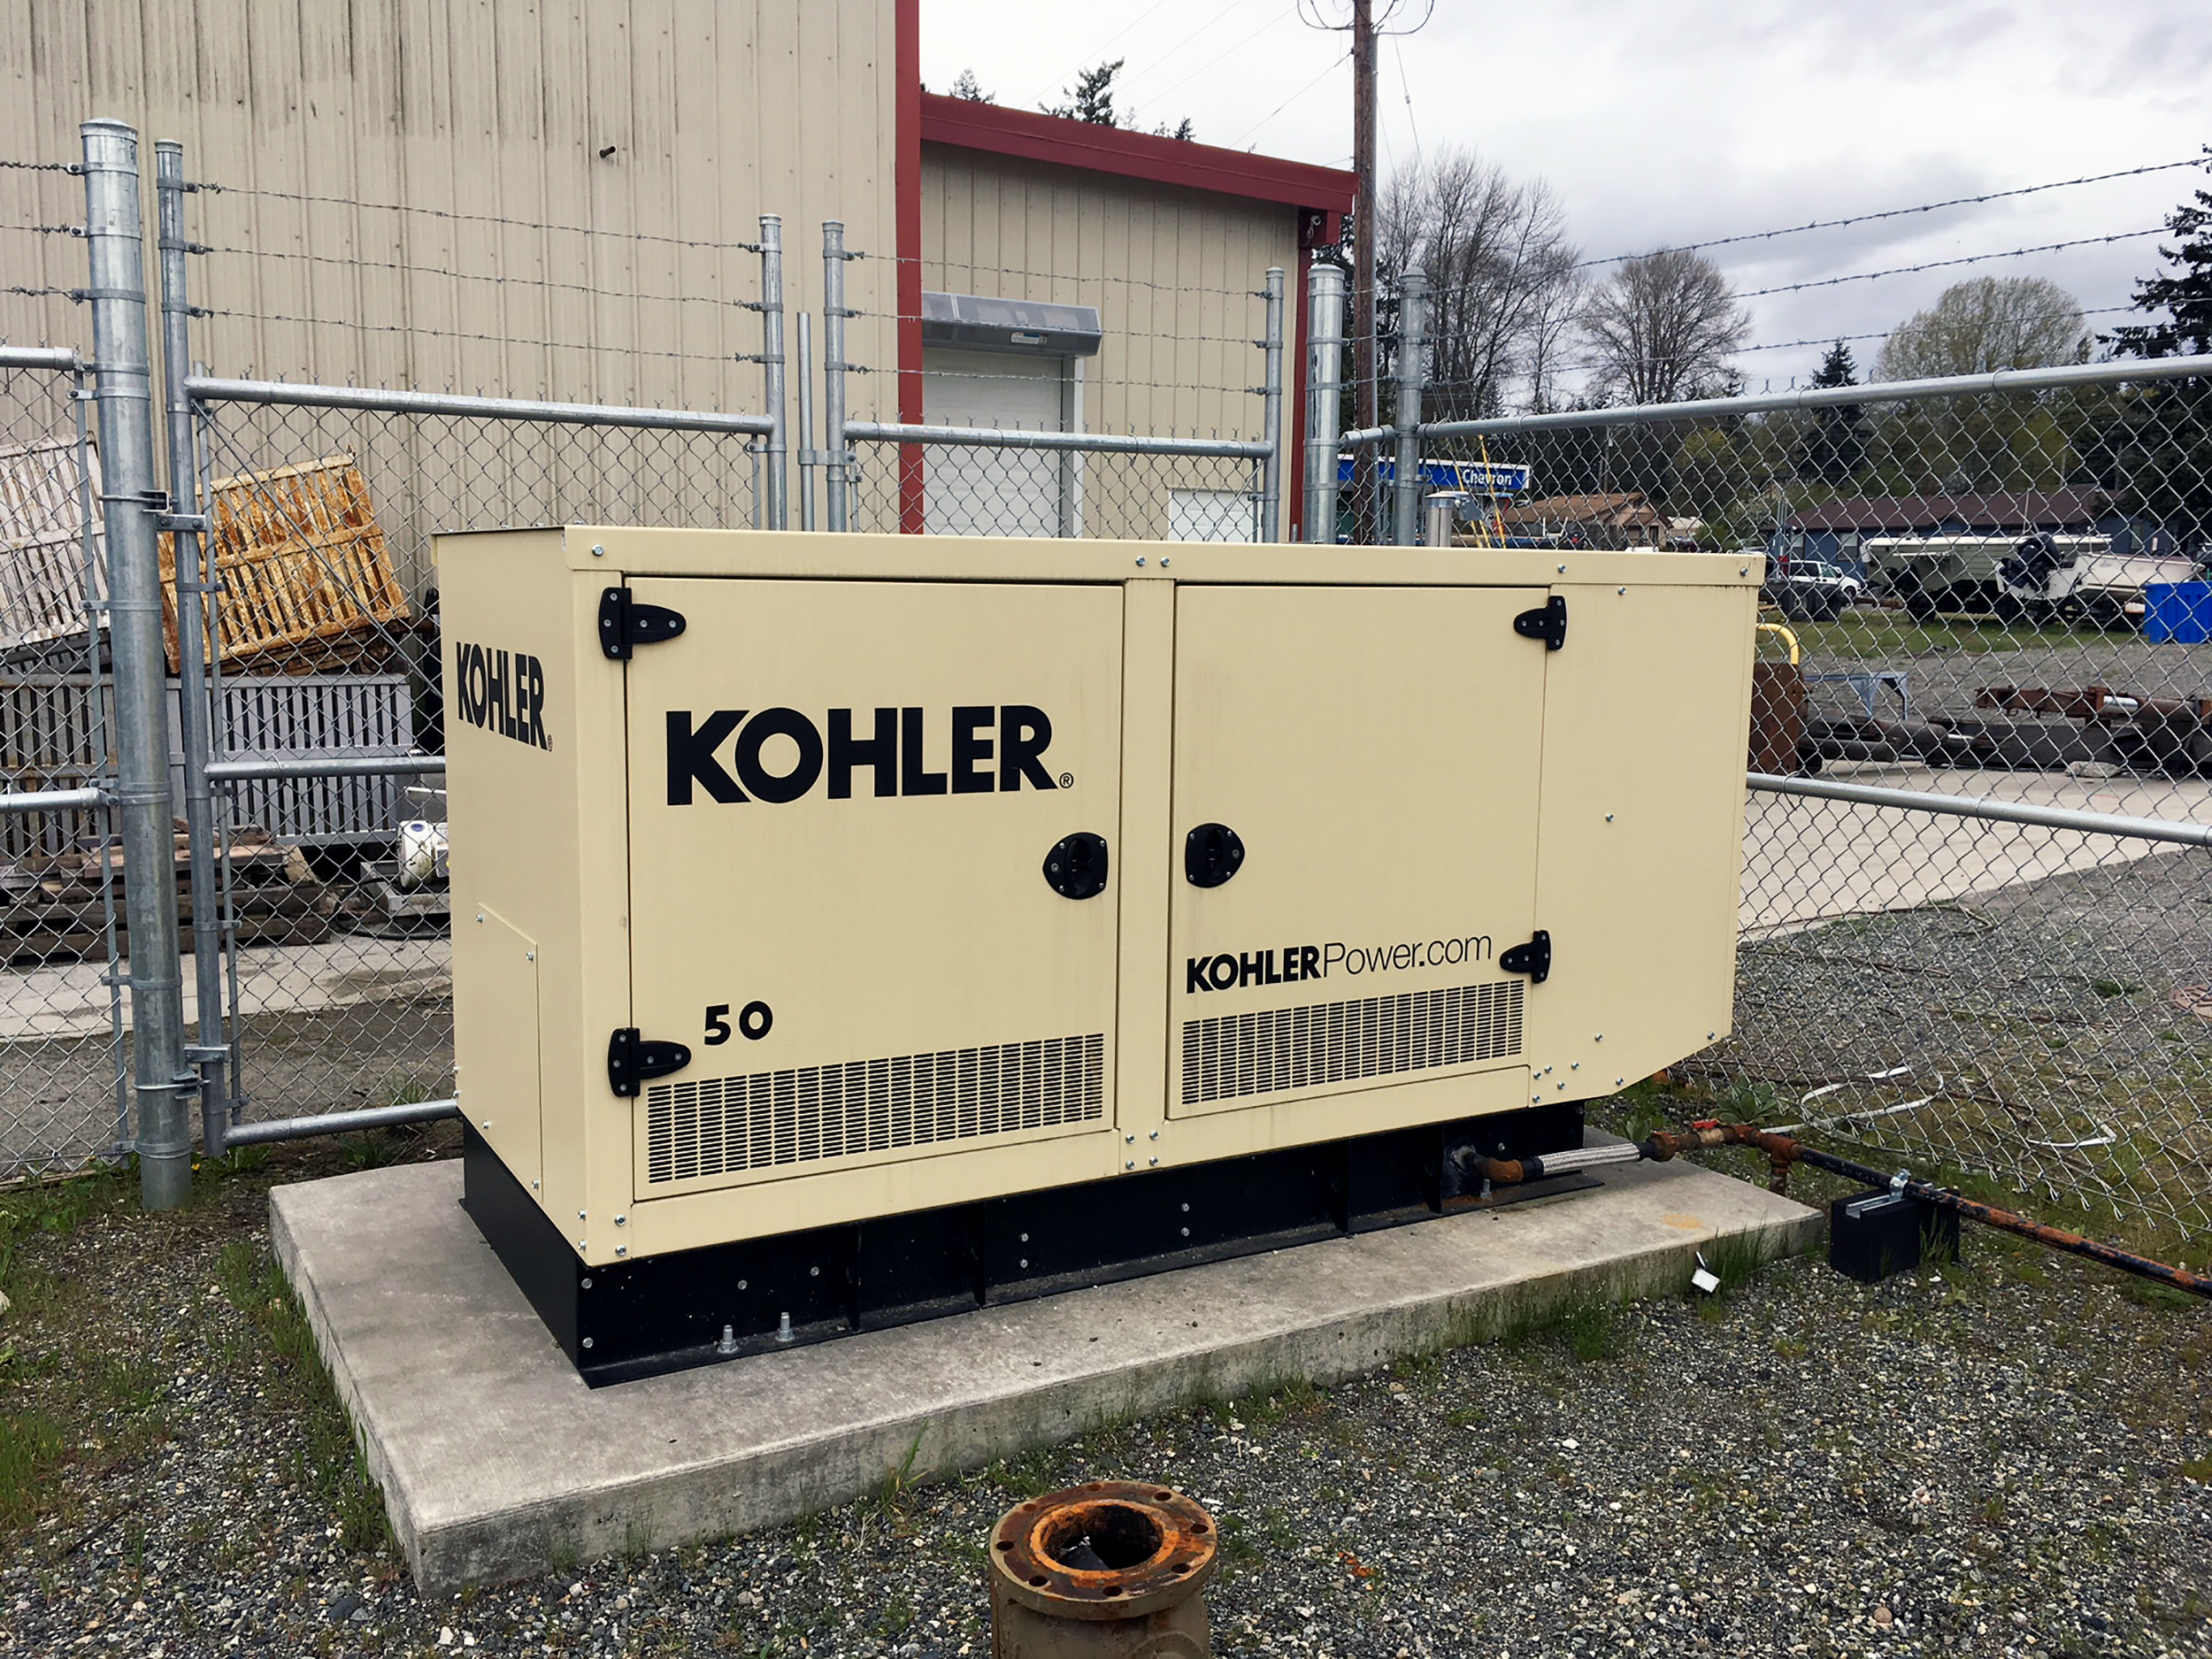 The Swinomish Utility Authority also secured an emergency generator, enabling the ability to pump water if electricity is otherwise inaccessible.